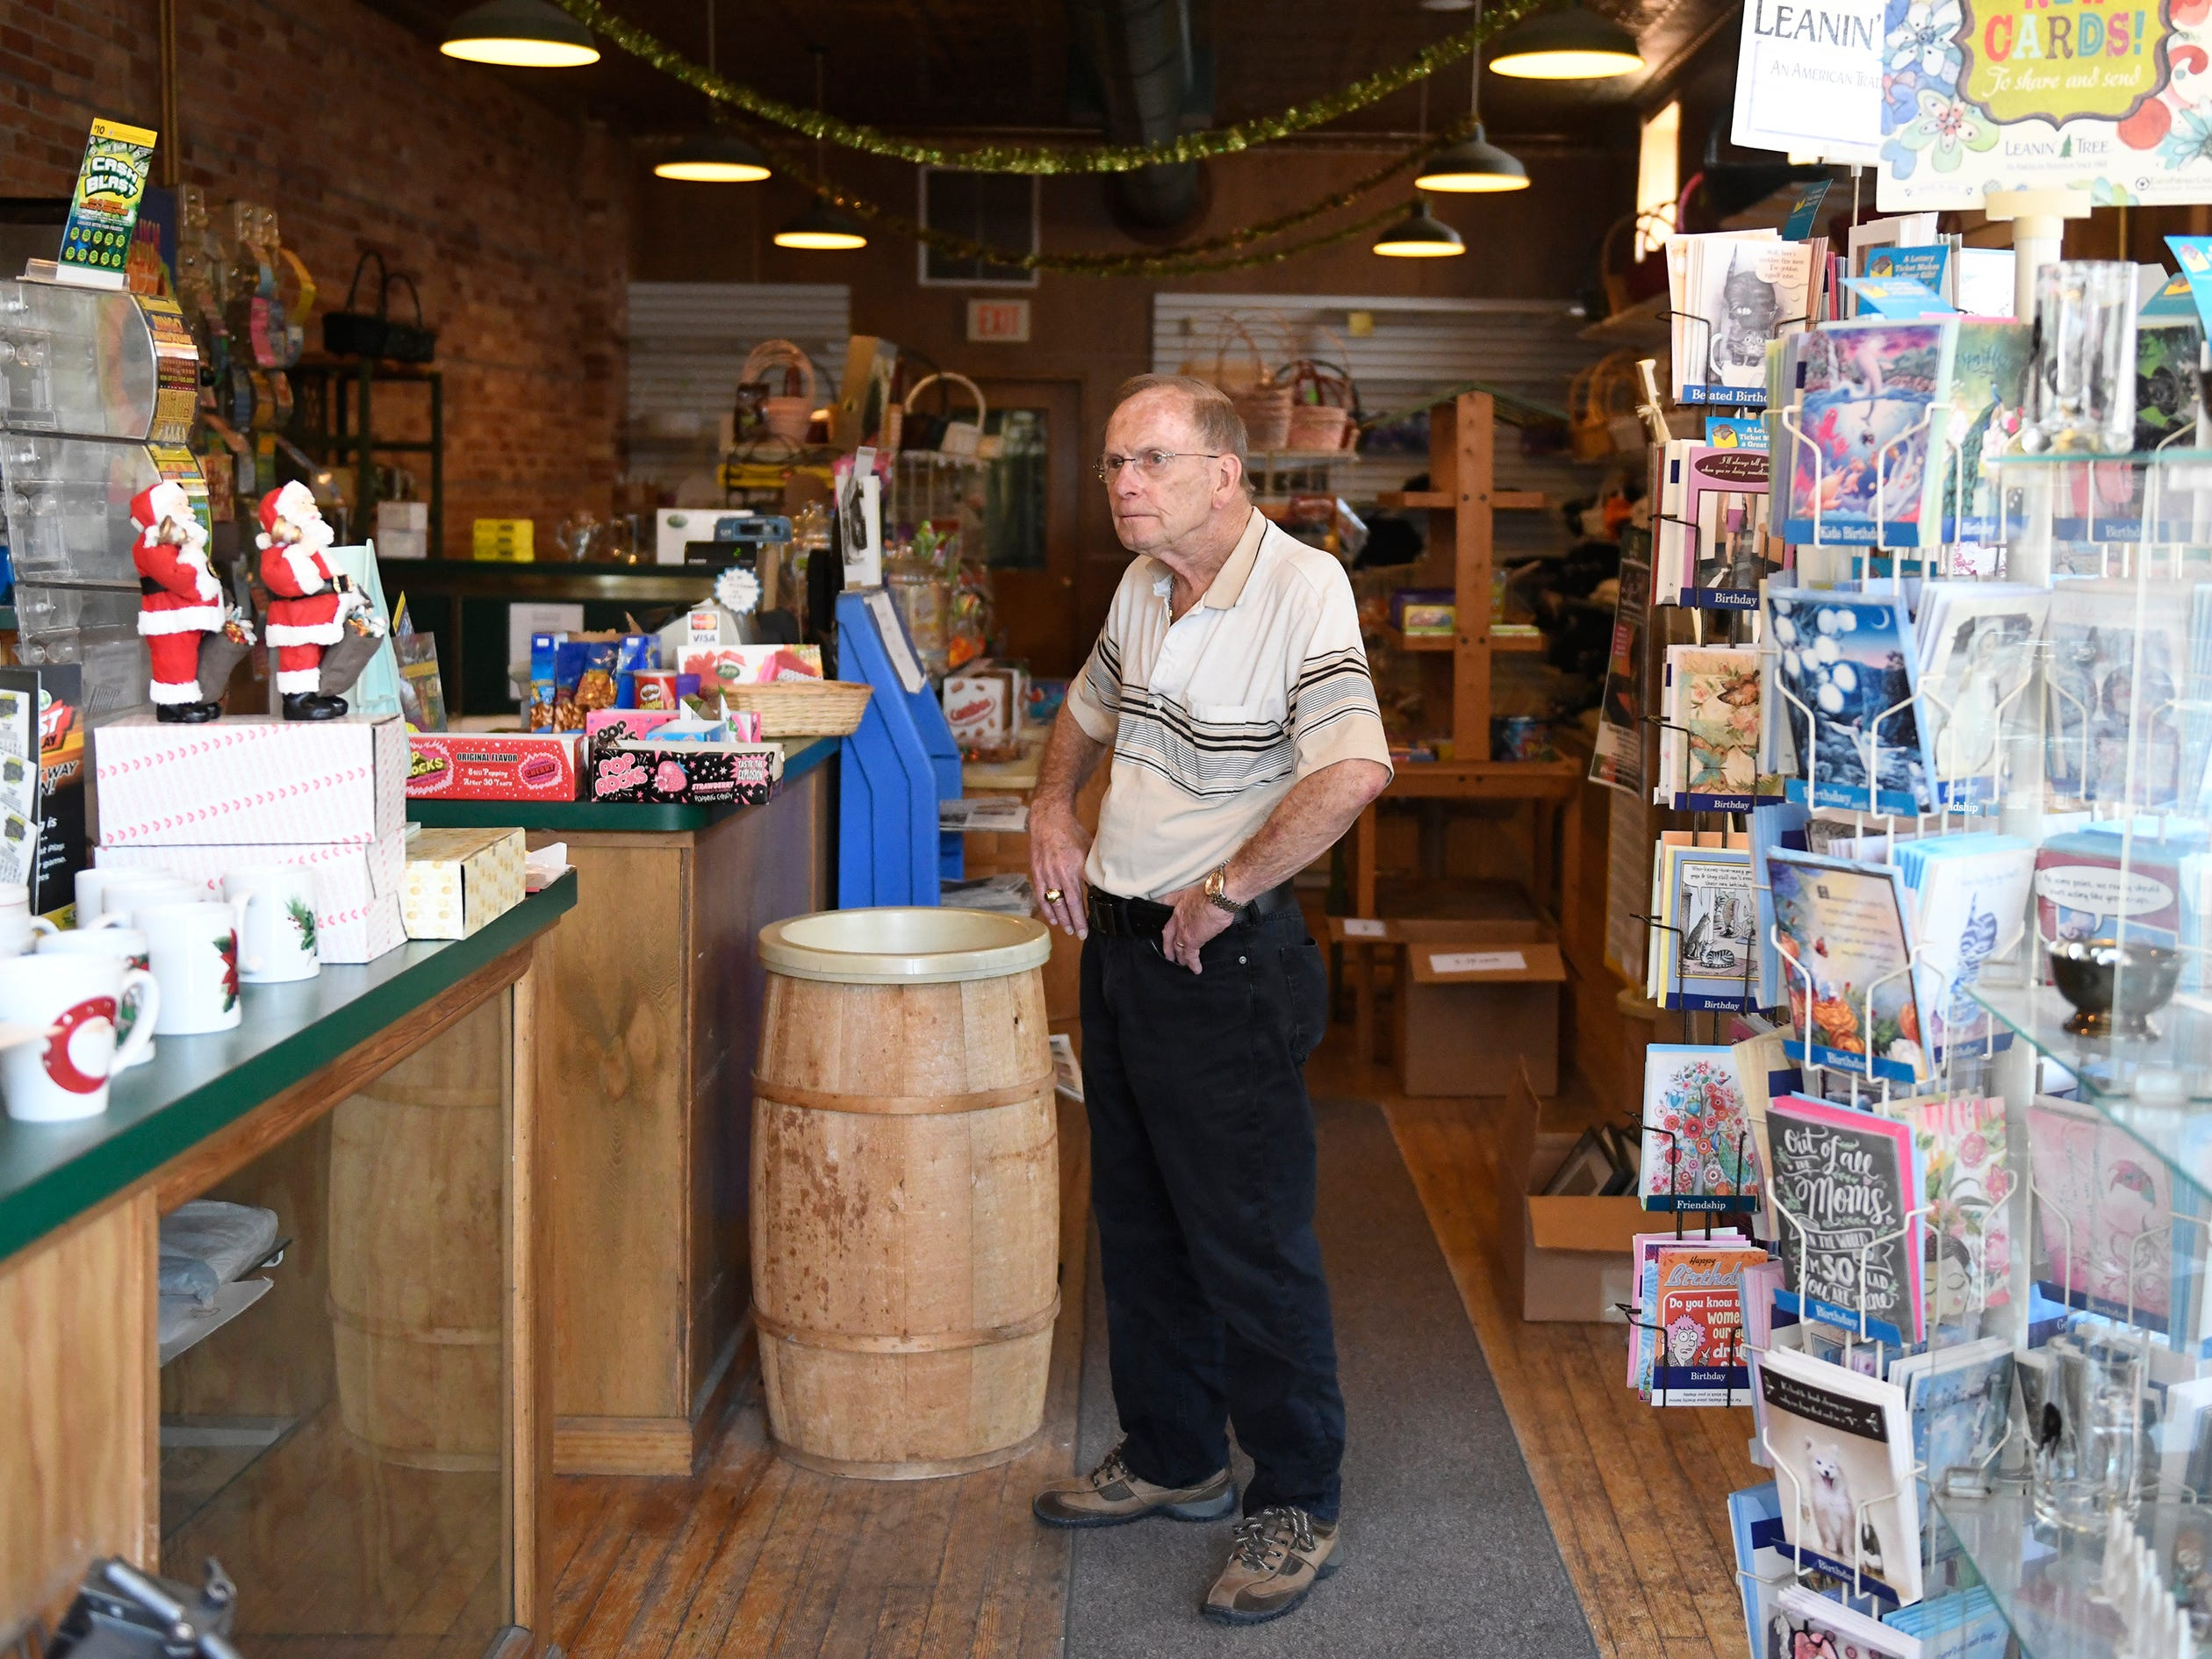 David Vanaman, owner of The Incredible Bulk, candy store in Millville, reflects on twenty-five years in business. He recently agreed to sell the building on N. High Street and plans to retire. The Incredible Bulk is planned to shut its doors forever in June.